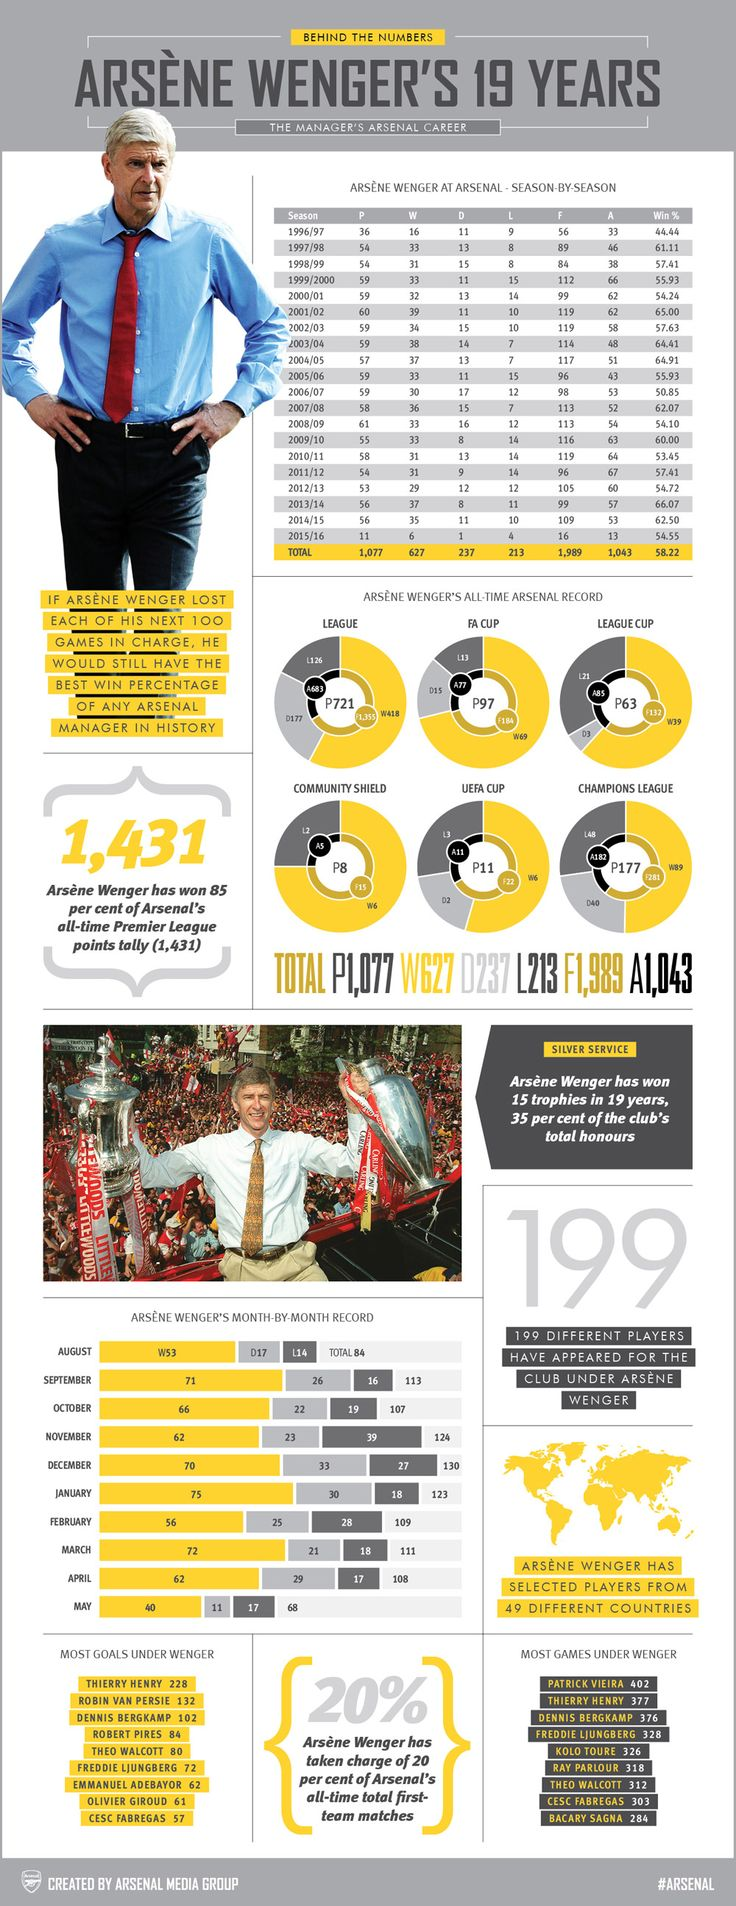 Behind the Numbers: Arsene Wenger. Arsène Wenger celebrated his 19th year in charge of Arsenal this week, and our latest infographic examines all the key stats.